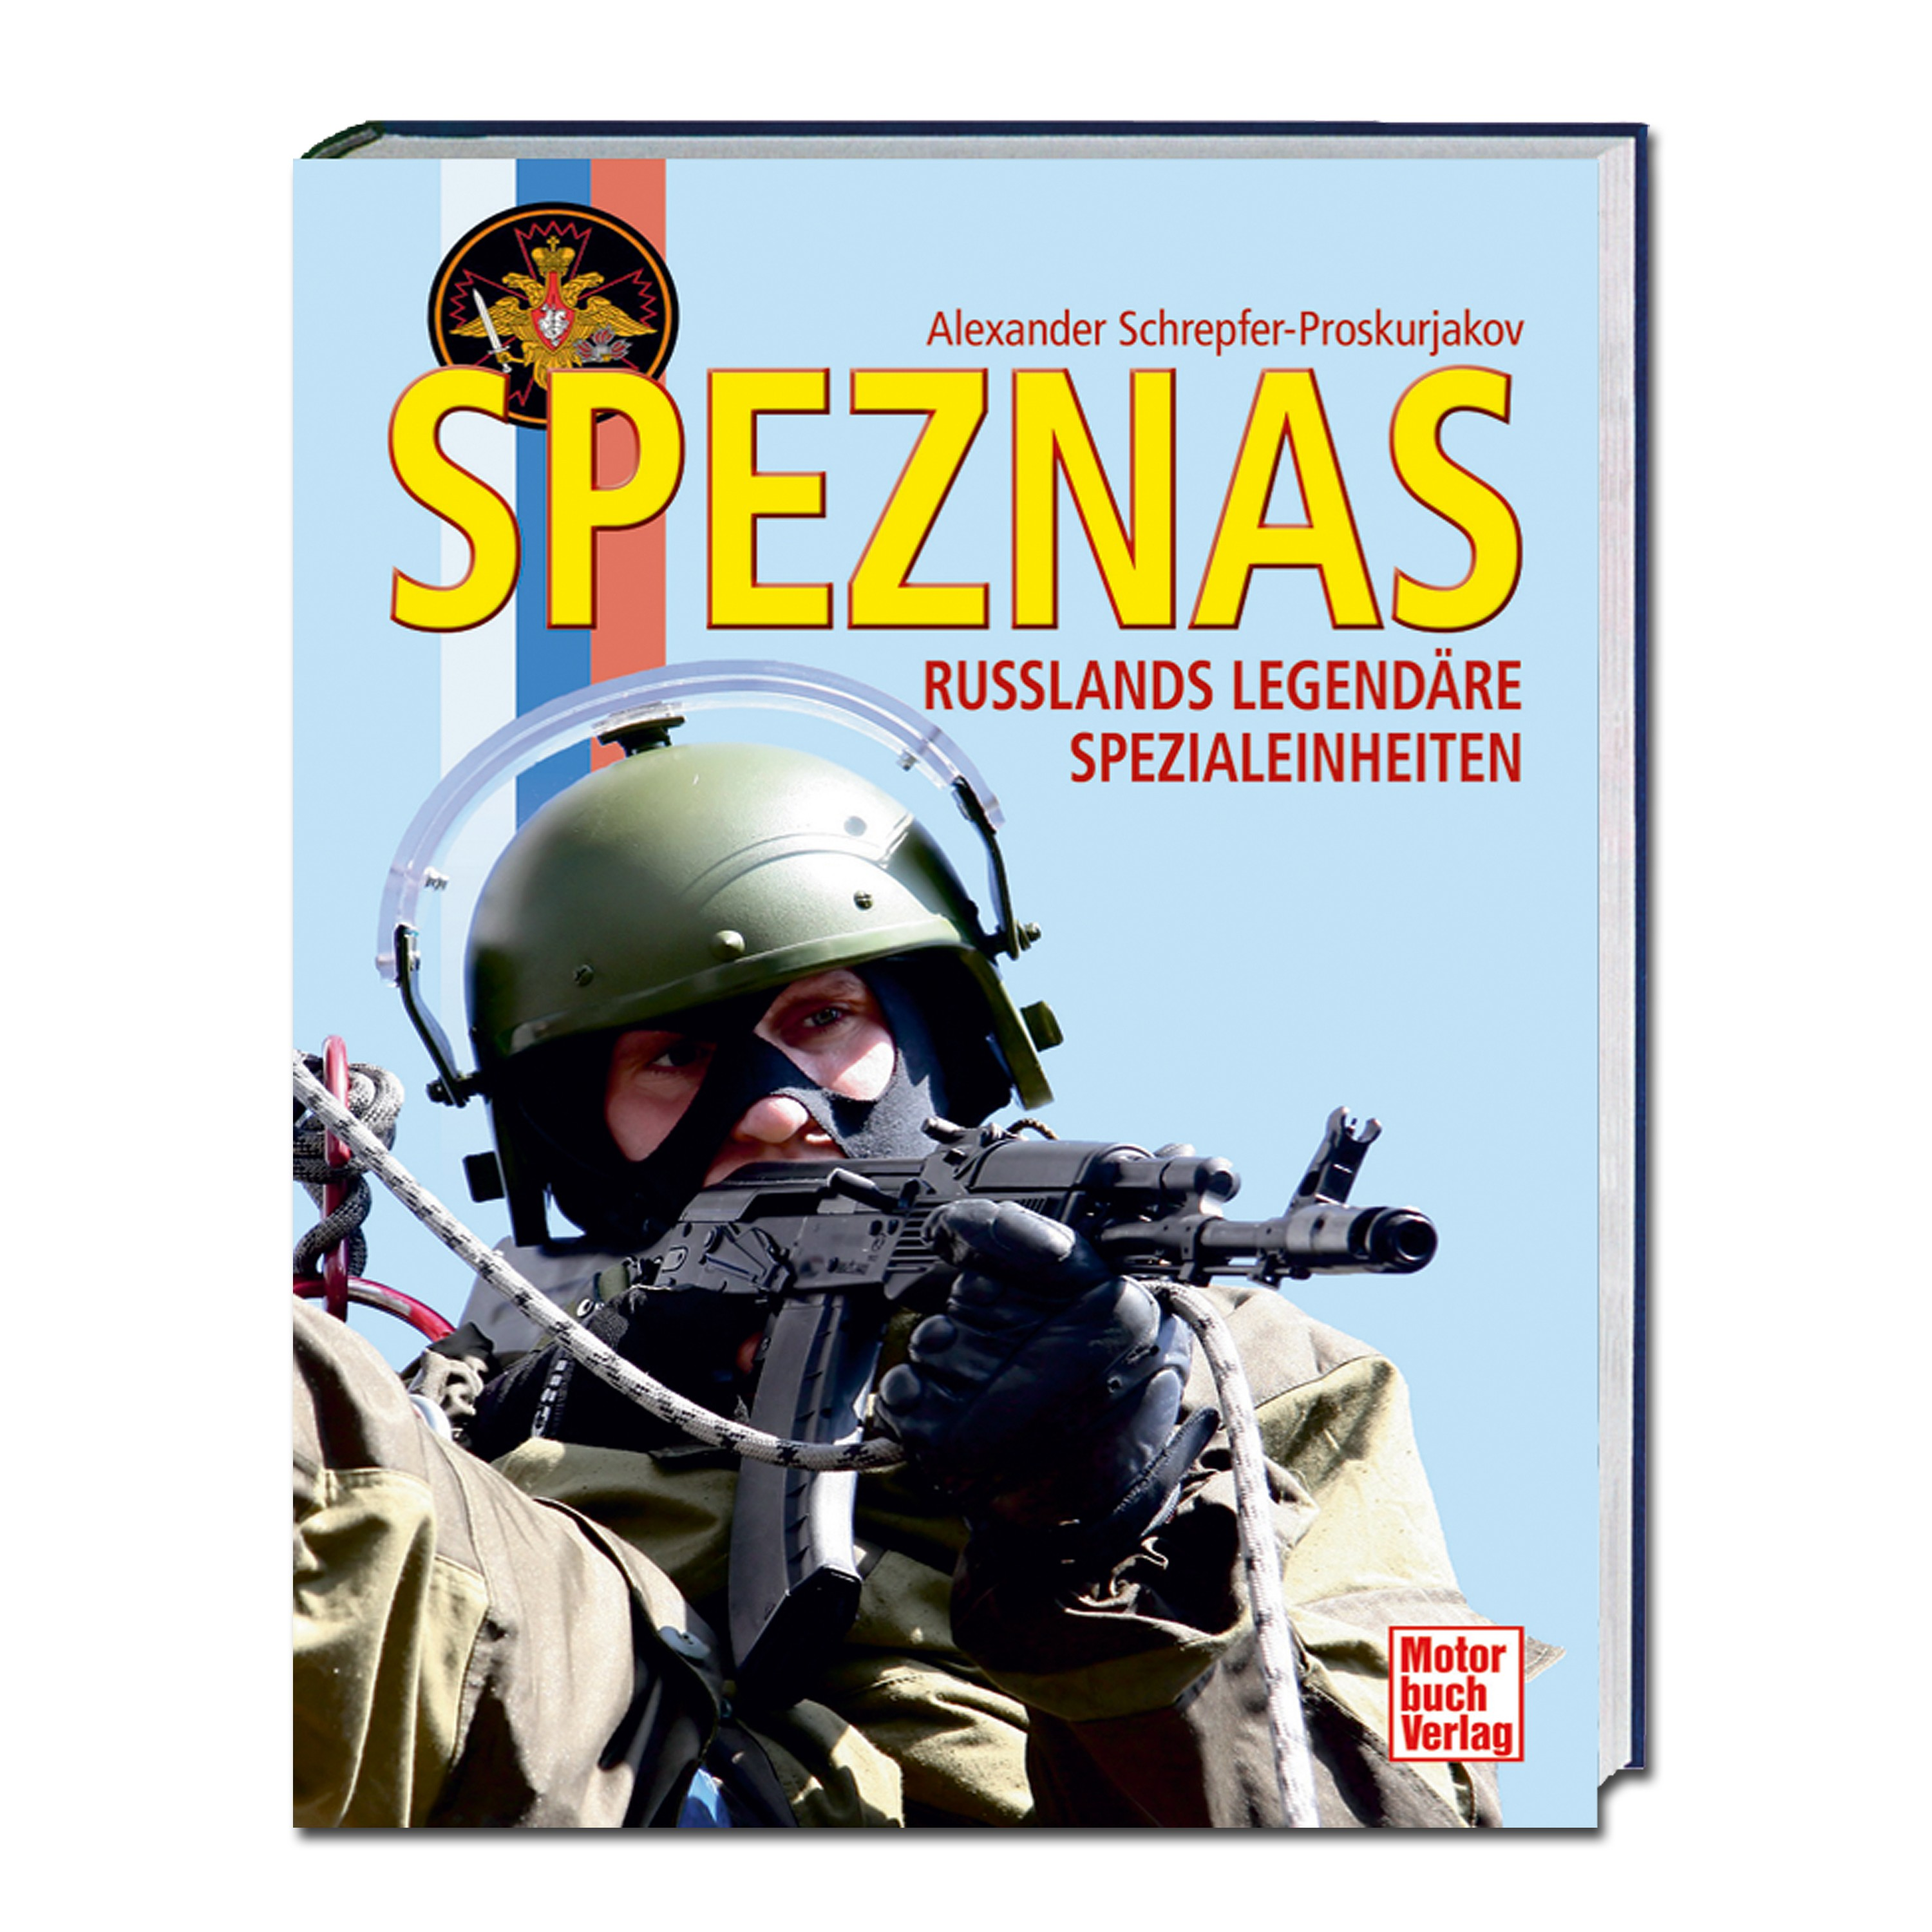 Book Spetsnaz - Russia's Legendary Special Forces